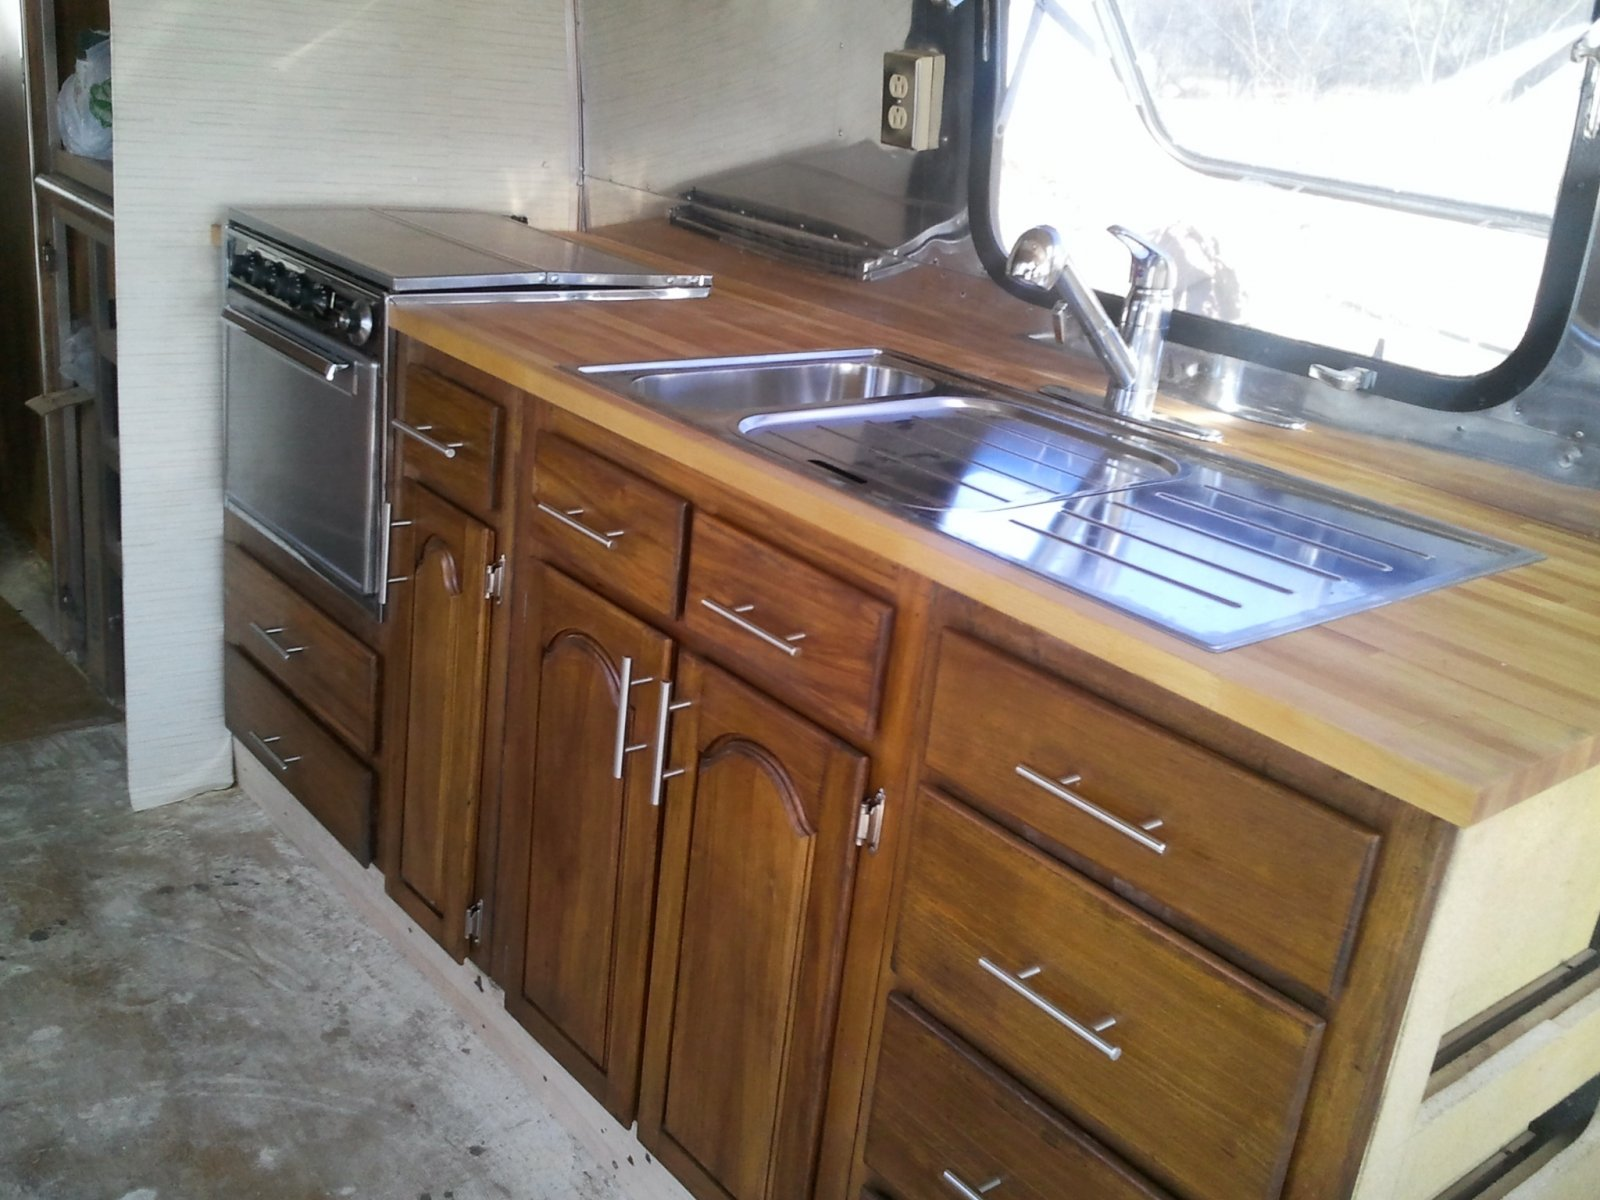 Click image for larger version  Name:83kitchen.jpg Views:206 Size:250.0 KB ID:128532